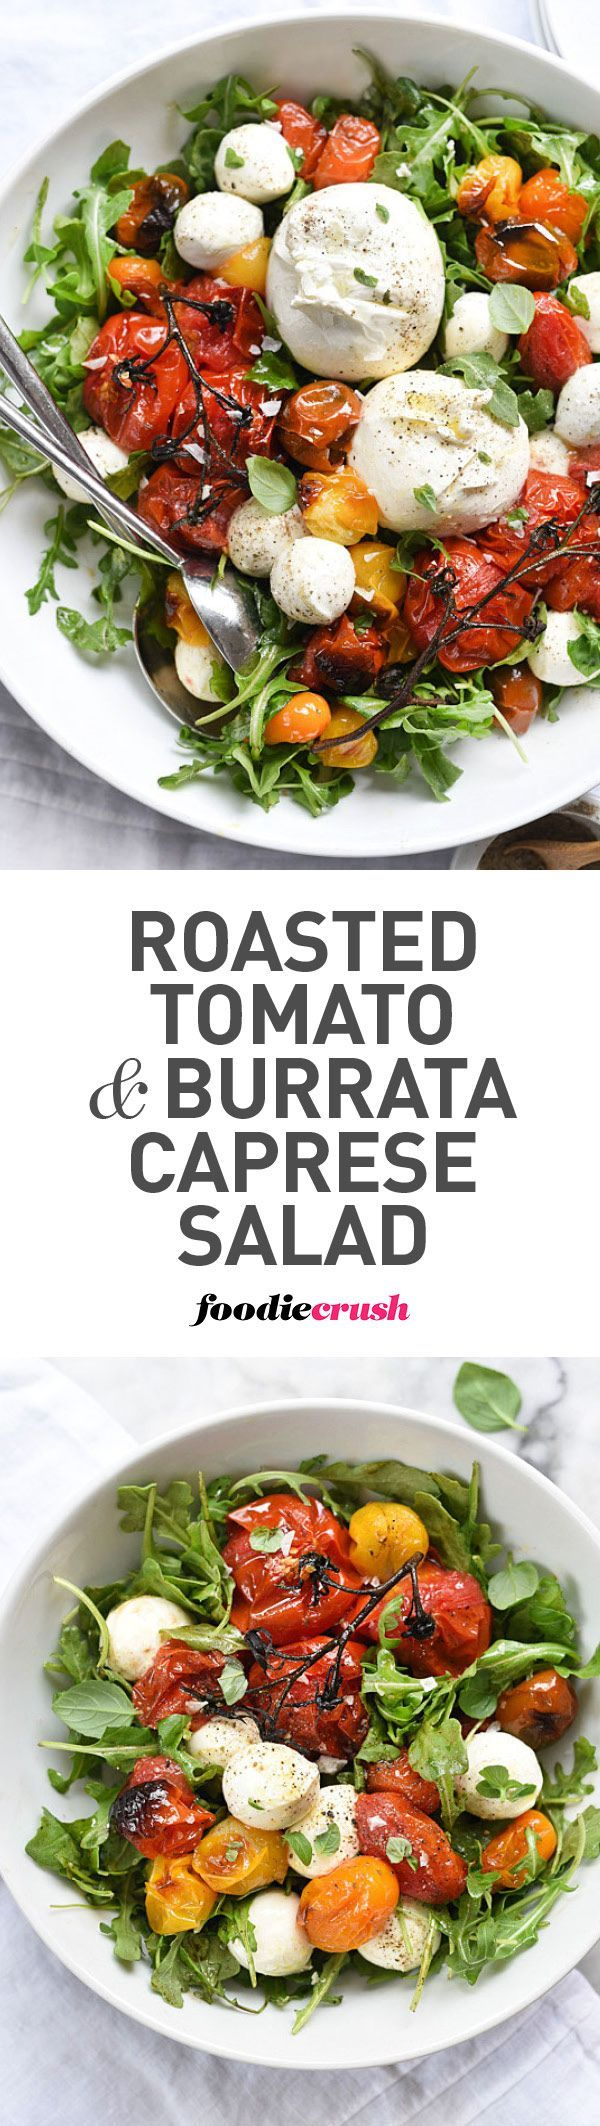 Roasted tomatoes make this caprese salad a favorite all year long | http://foodiecrush.com